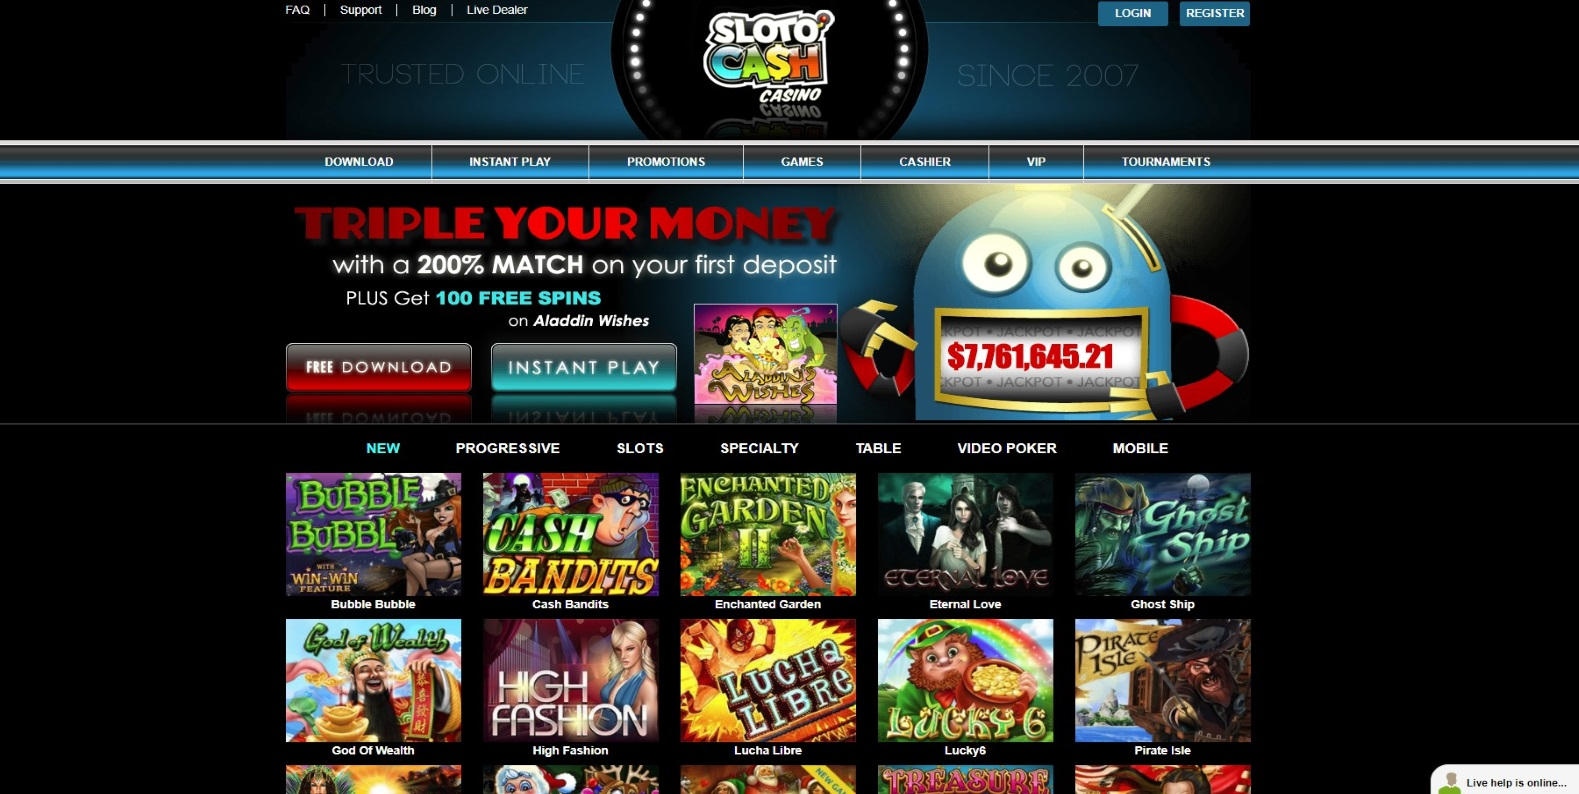 The home page of Sloto'Cash casino